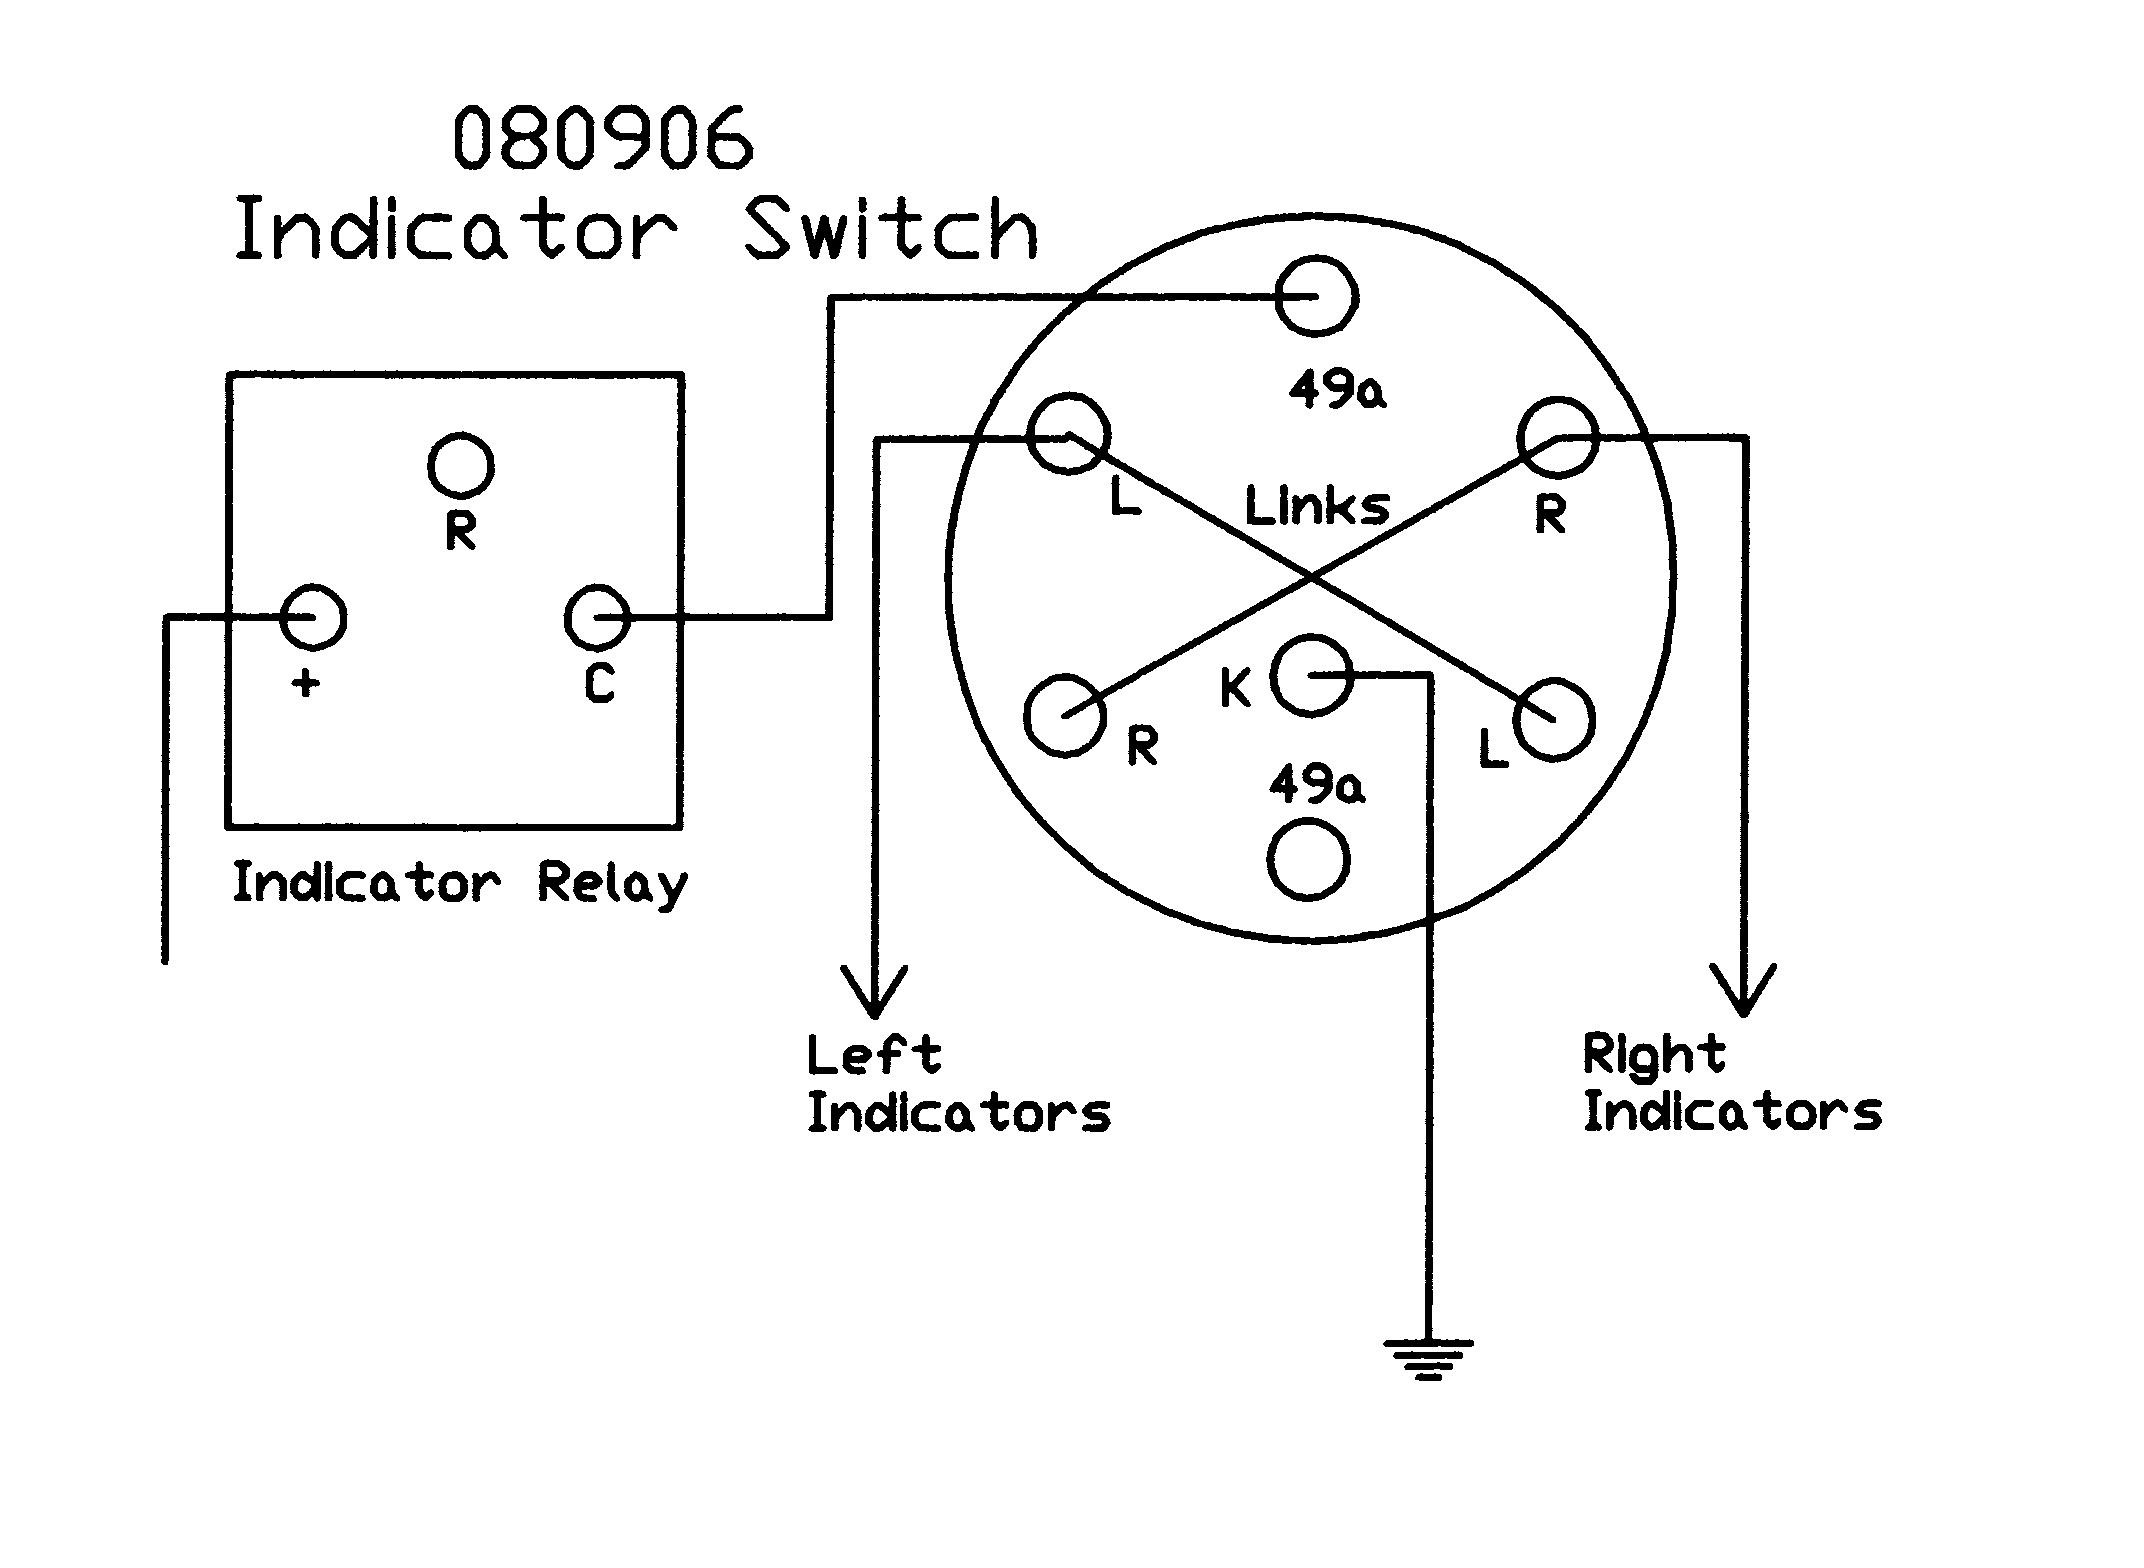 Rotary Switch Black Plastic Lever And Integral Red Warning Lamp Automotive Hazard Wiring Diagram Free Download Downloads 080906 Indicator Switches